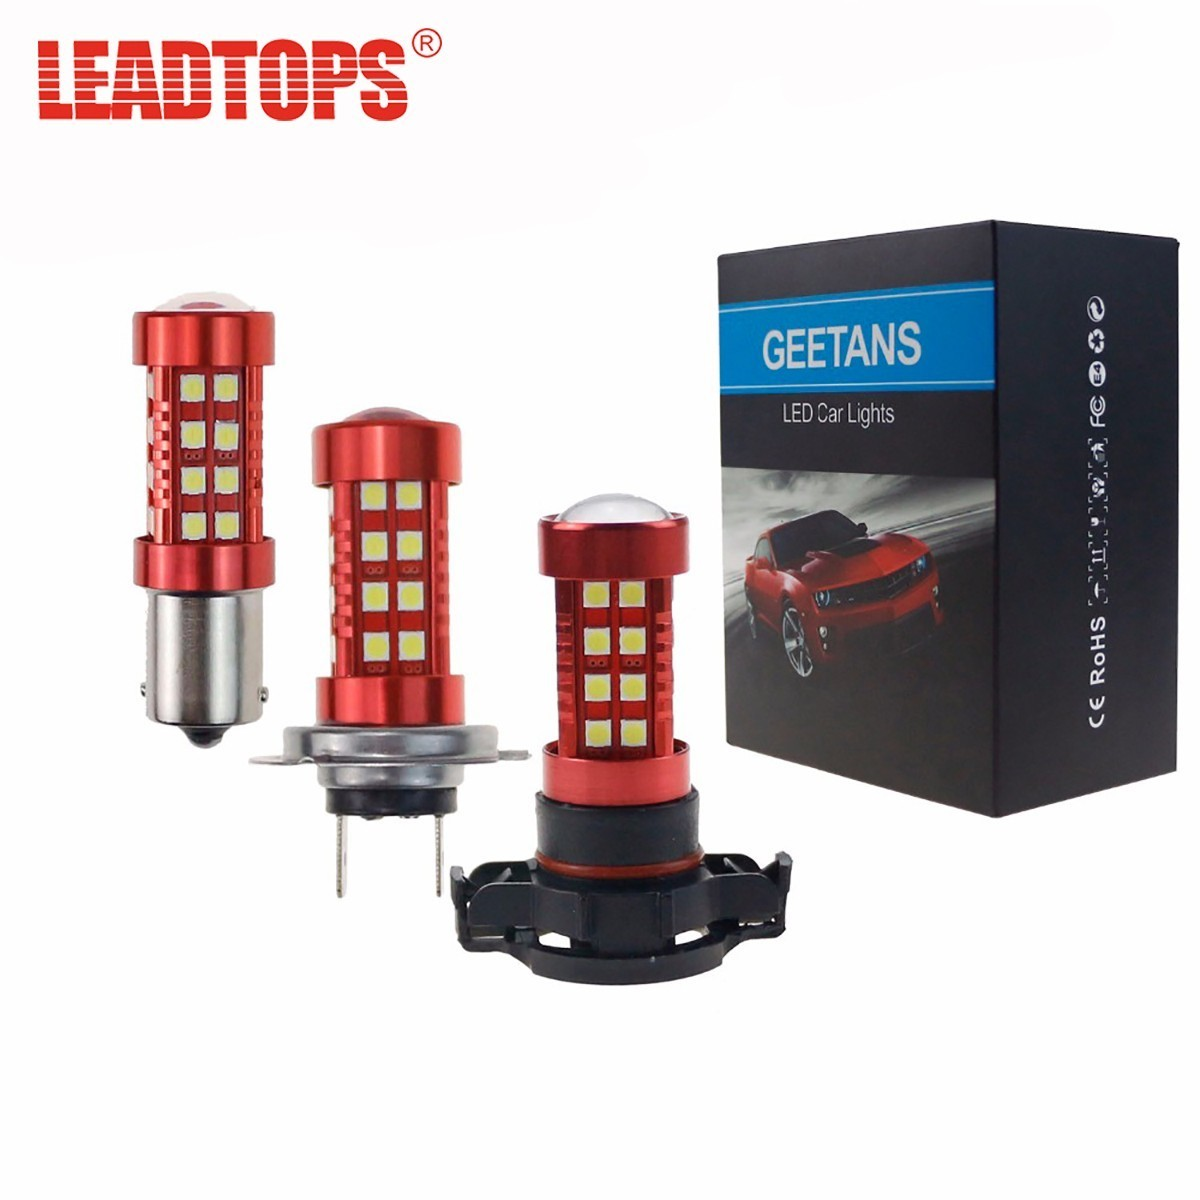 LEADTOPS Car Light Assembly LED H11 DRL Fog Lights LED 9005 9006 H10 H1 H4 H7 1156 H11 Lamps 6000k Super Bright White Bulb CJ